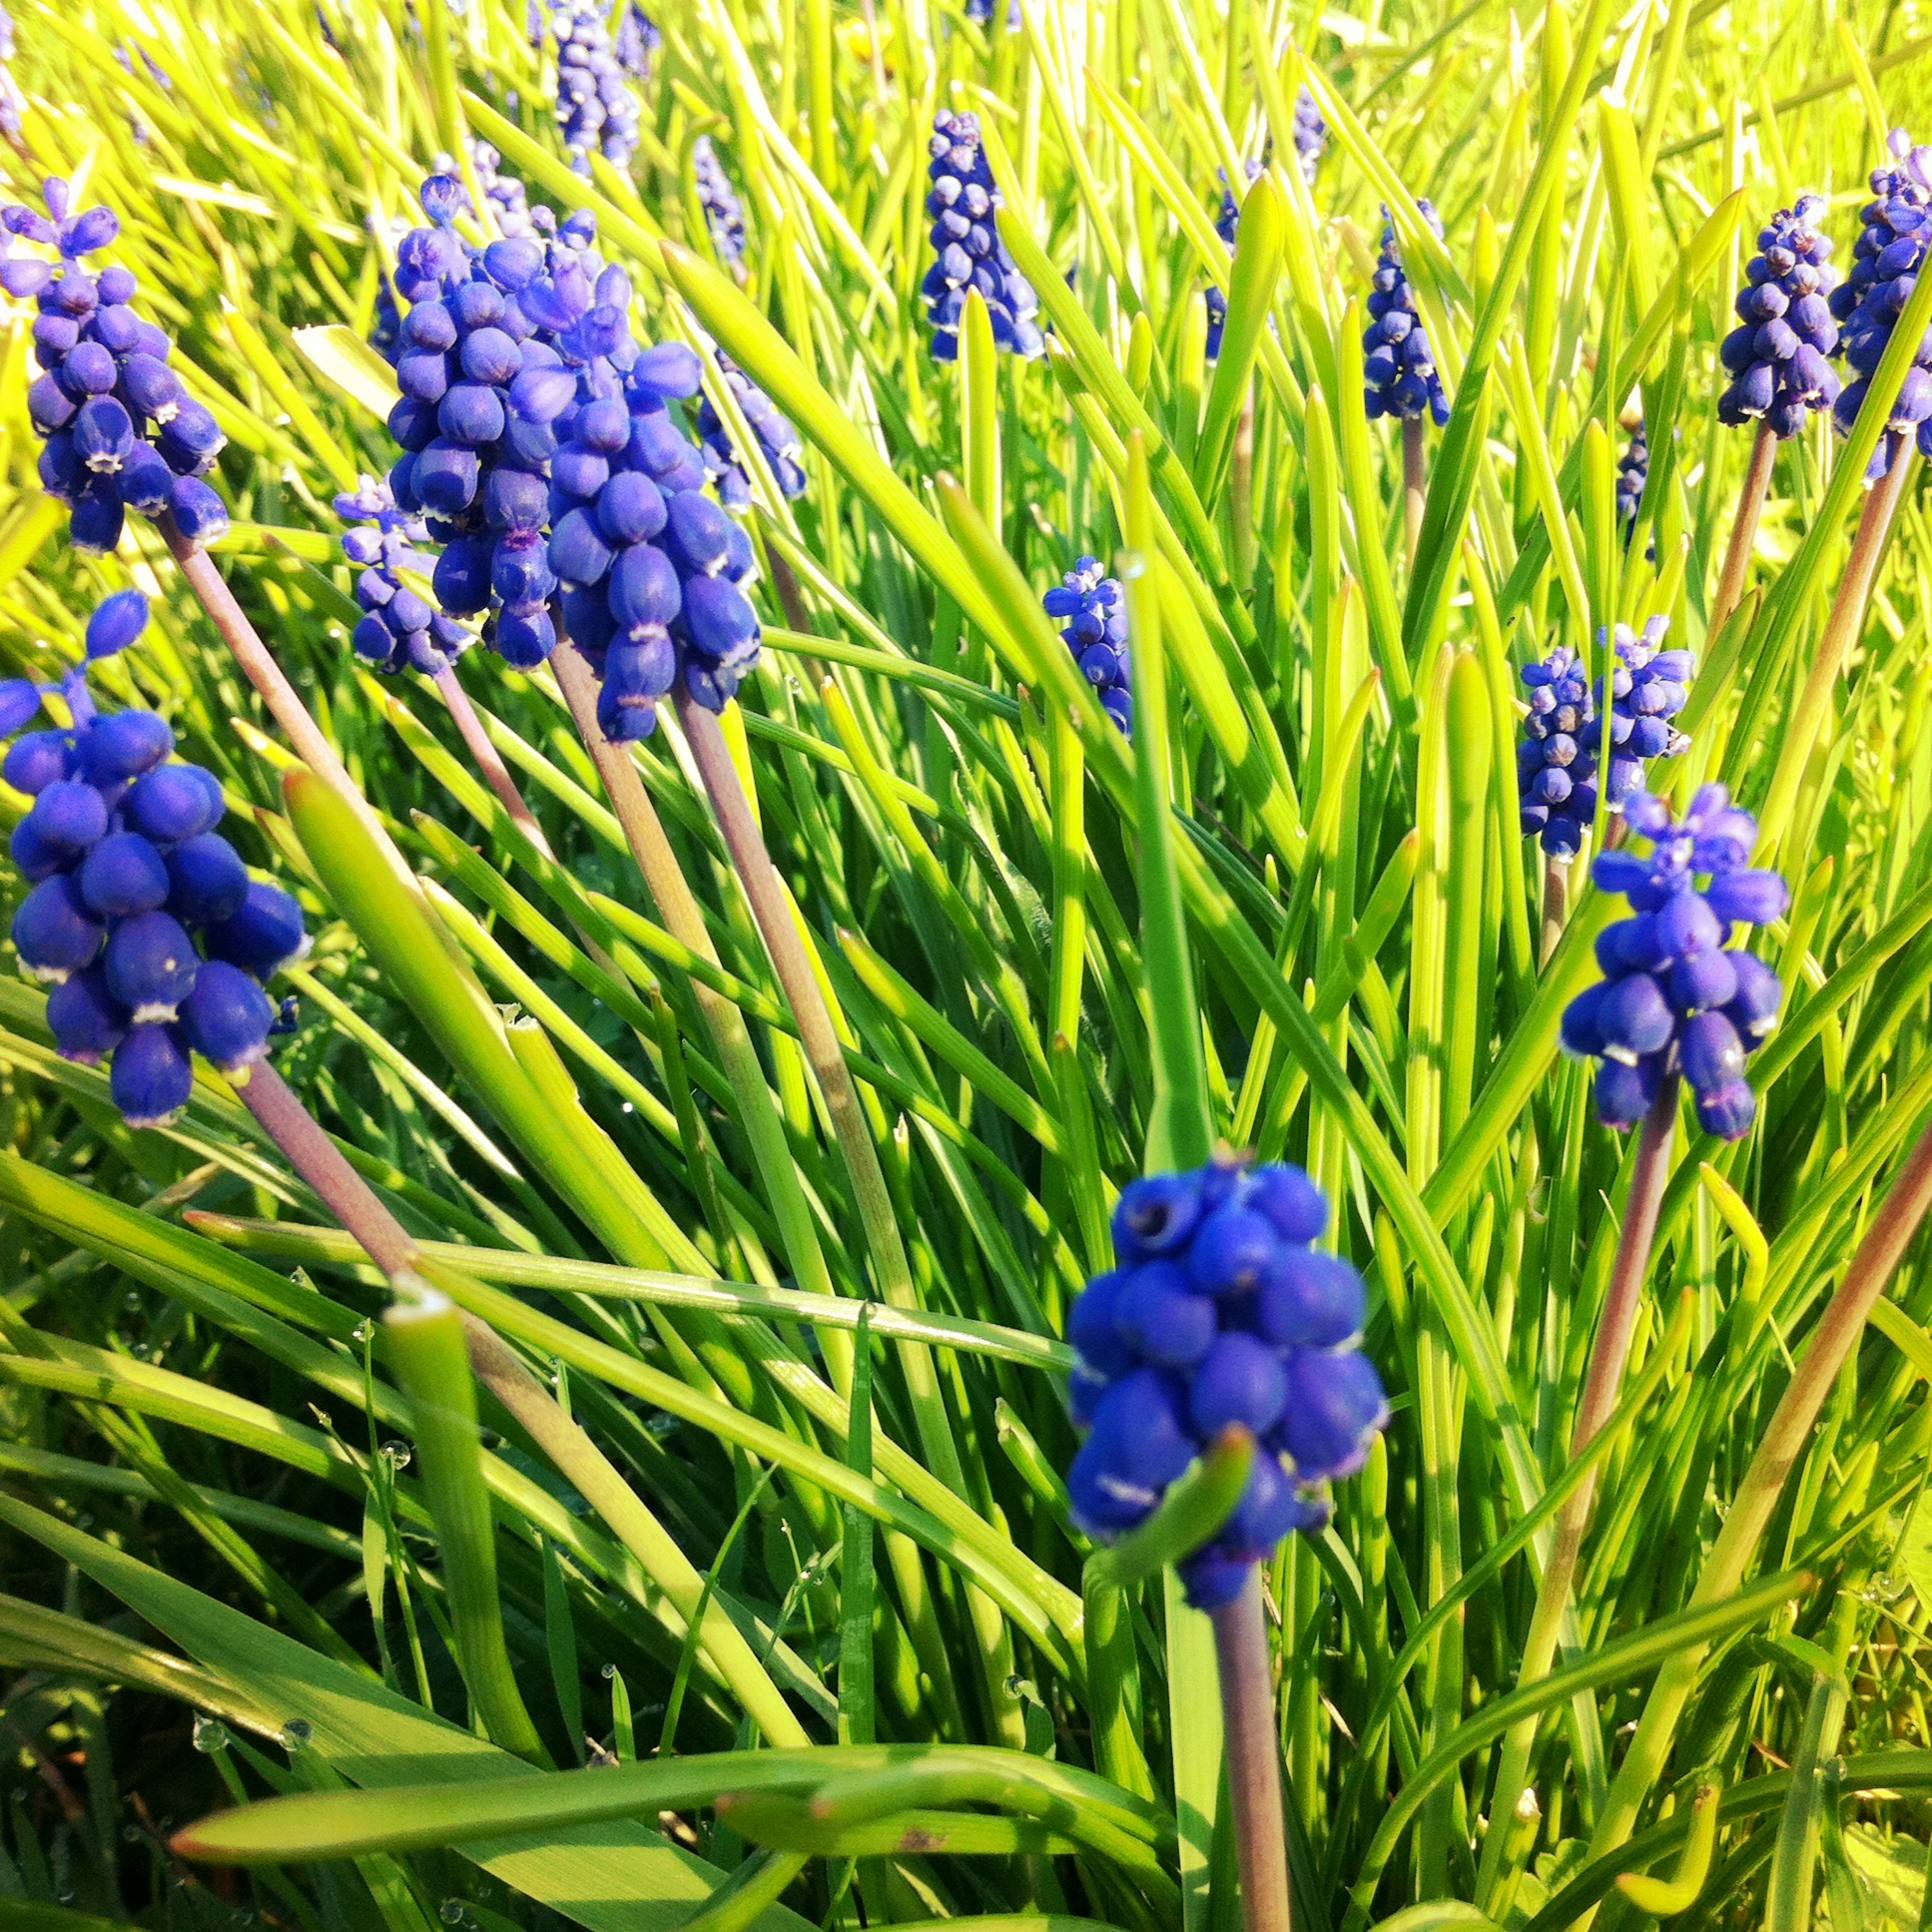 ad7b2abb5 Common Hyacinth is quite a popular spring flower, but whenever I think of  Hyacinth, I think of the little tiny flowers which come up in strange  places, ...